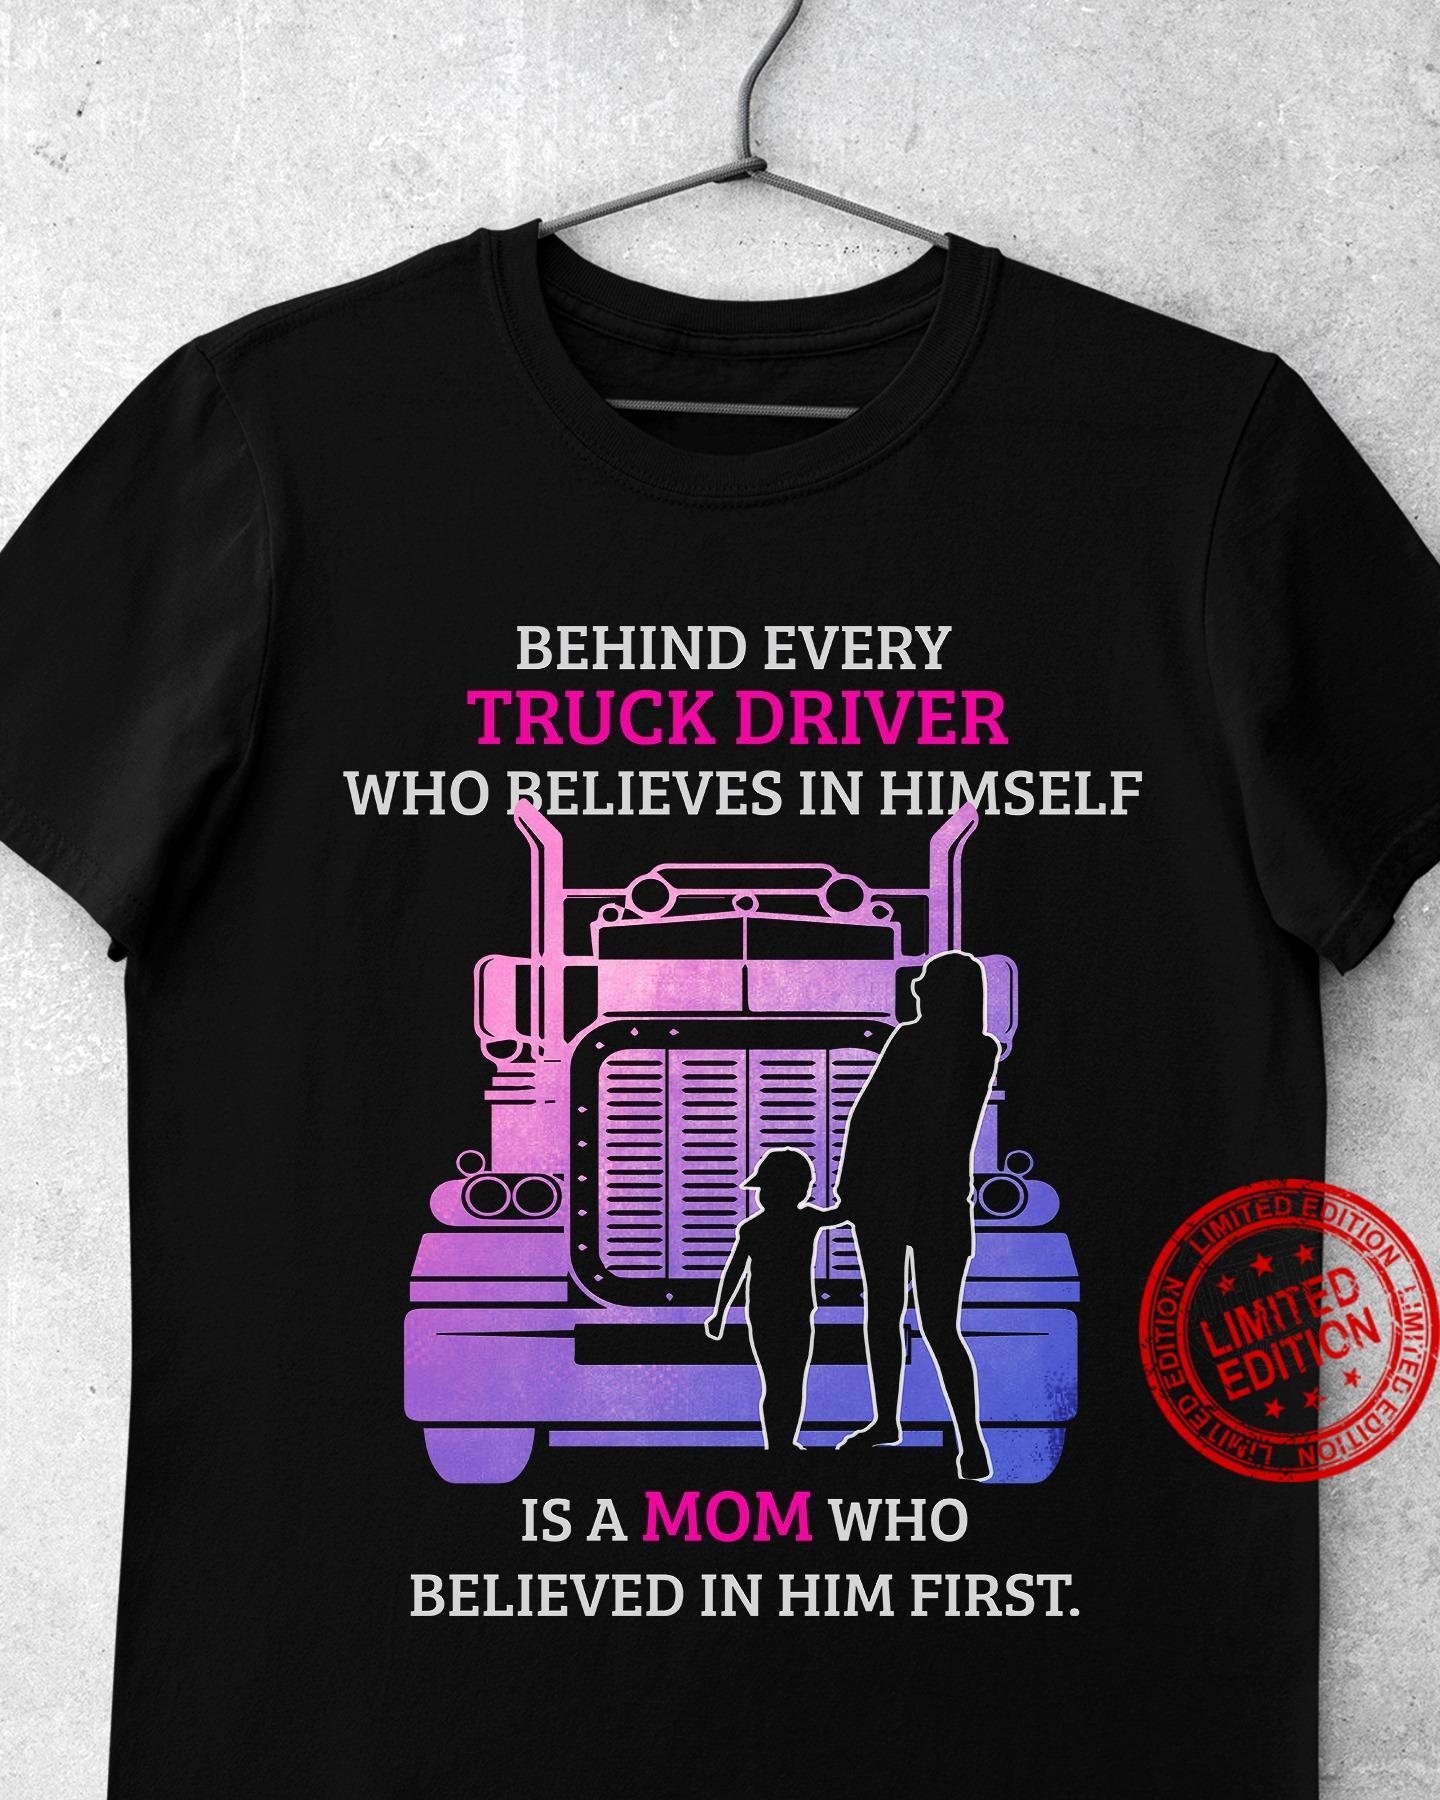 Behind Every Truck Driver Who Believes In Himself Shirt